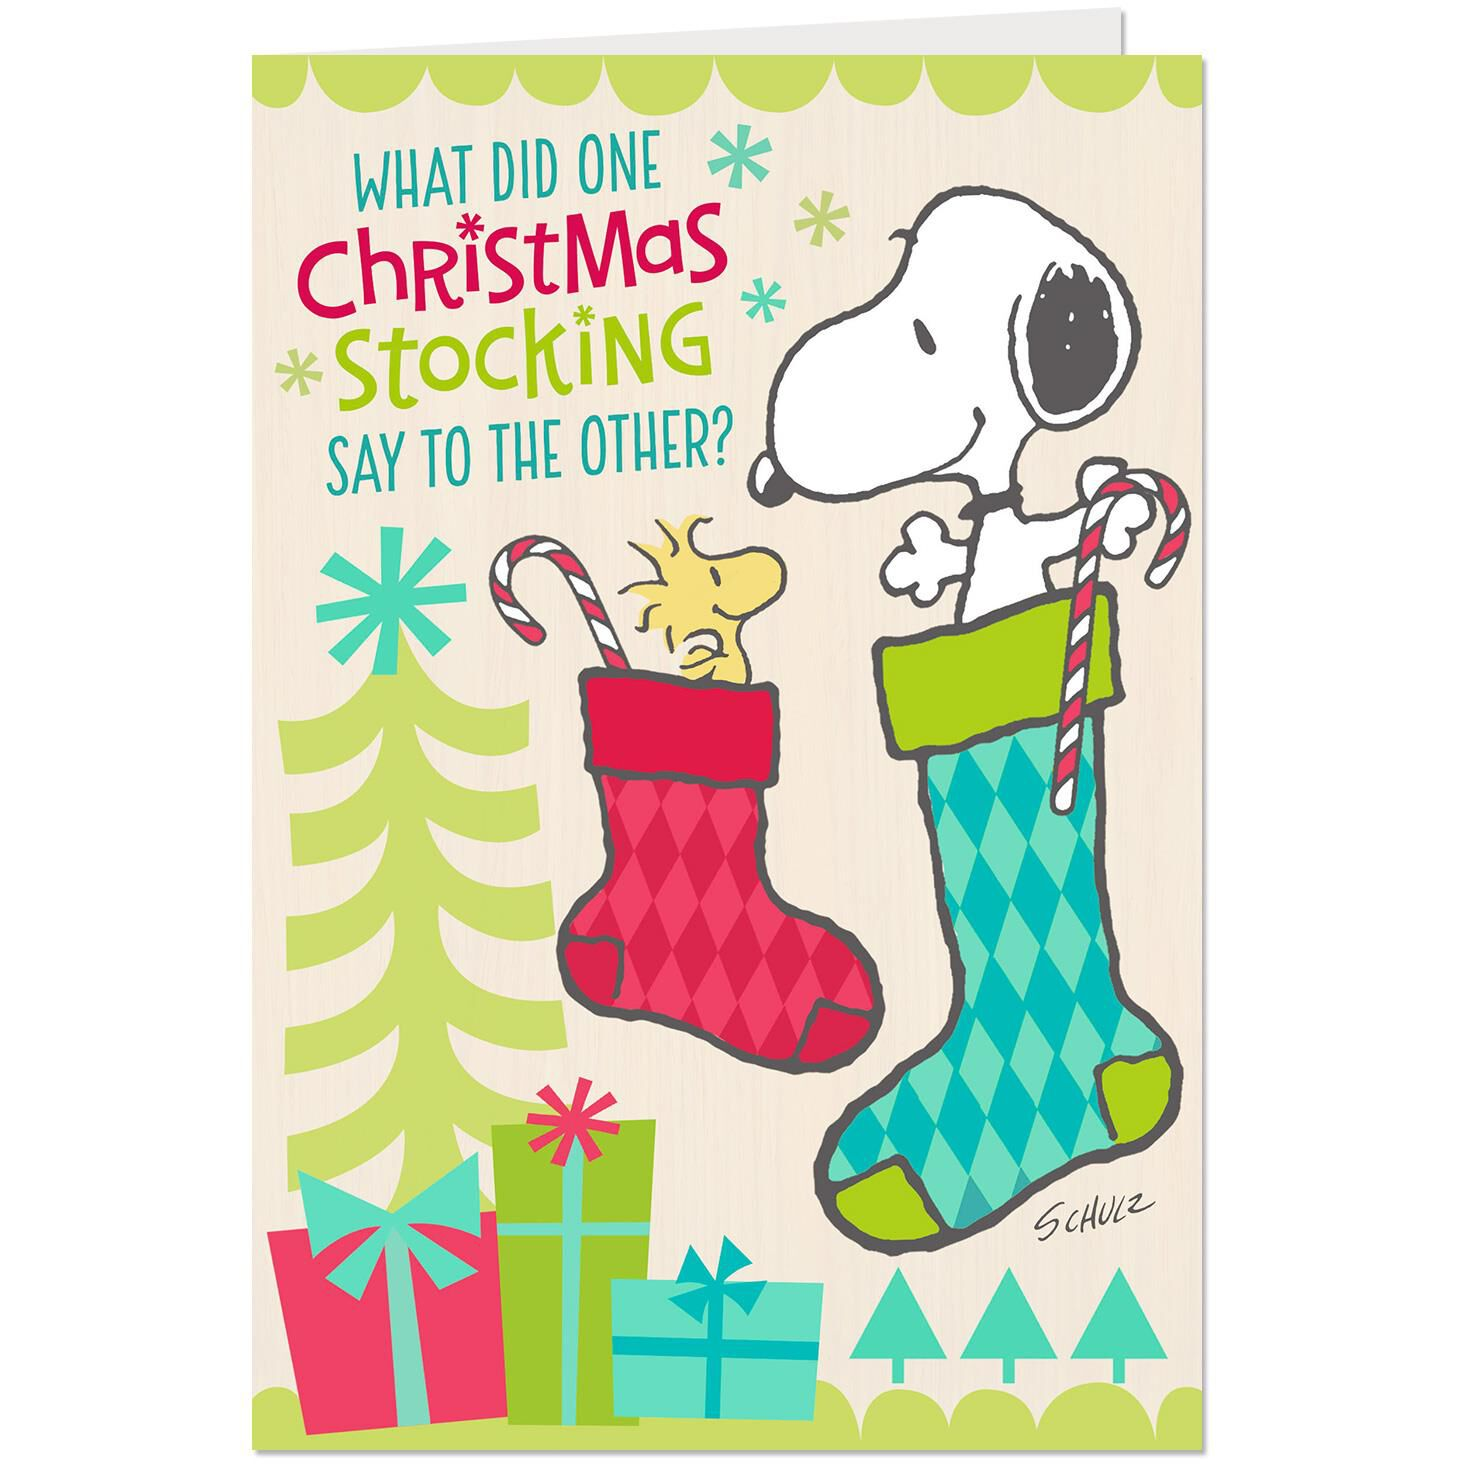 peanuts snoopy and woodstock stockings funny christmas card greeting cards hallmark